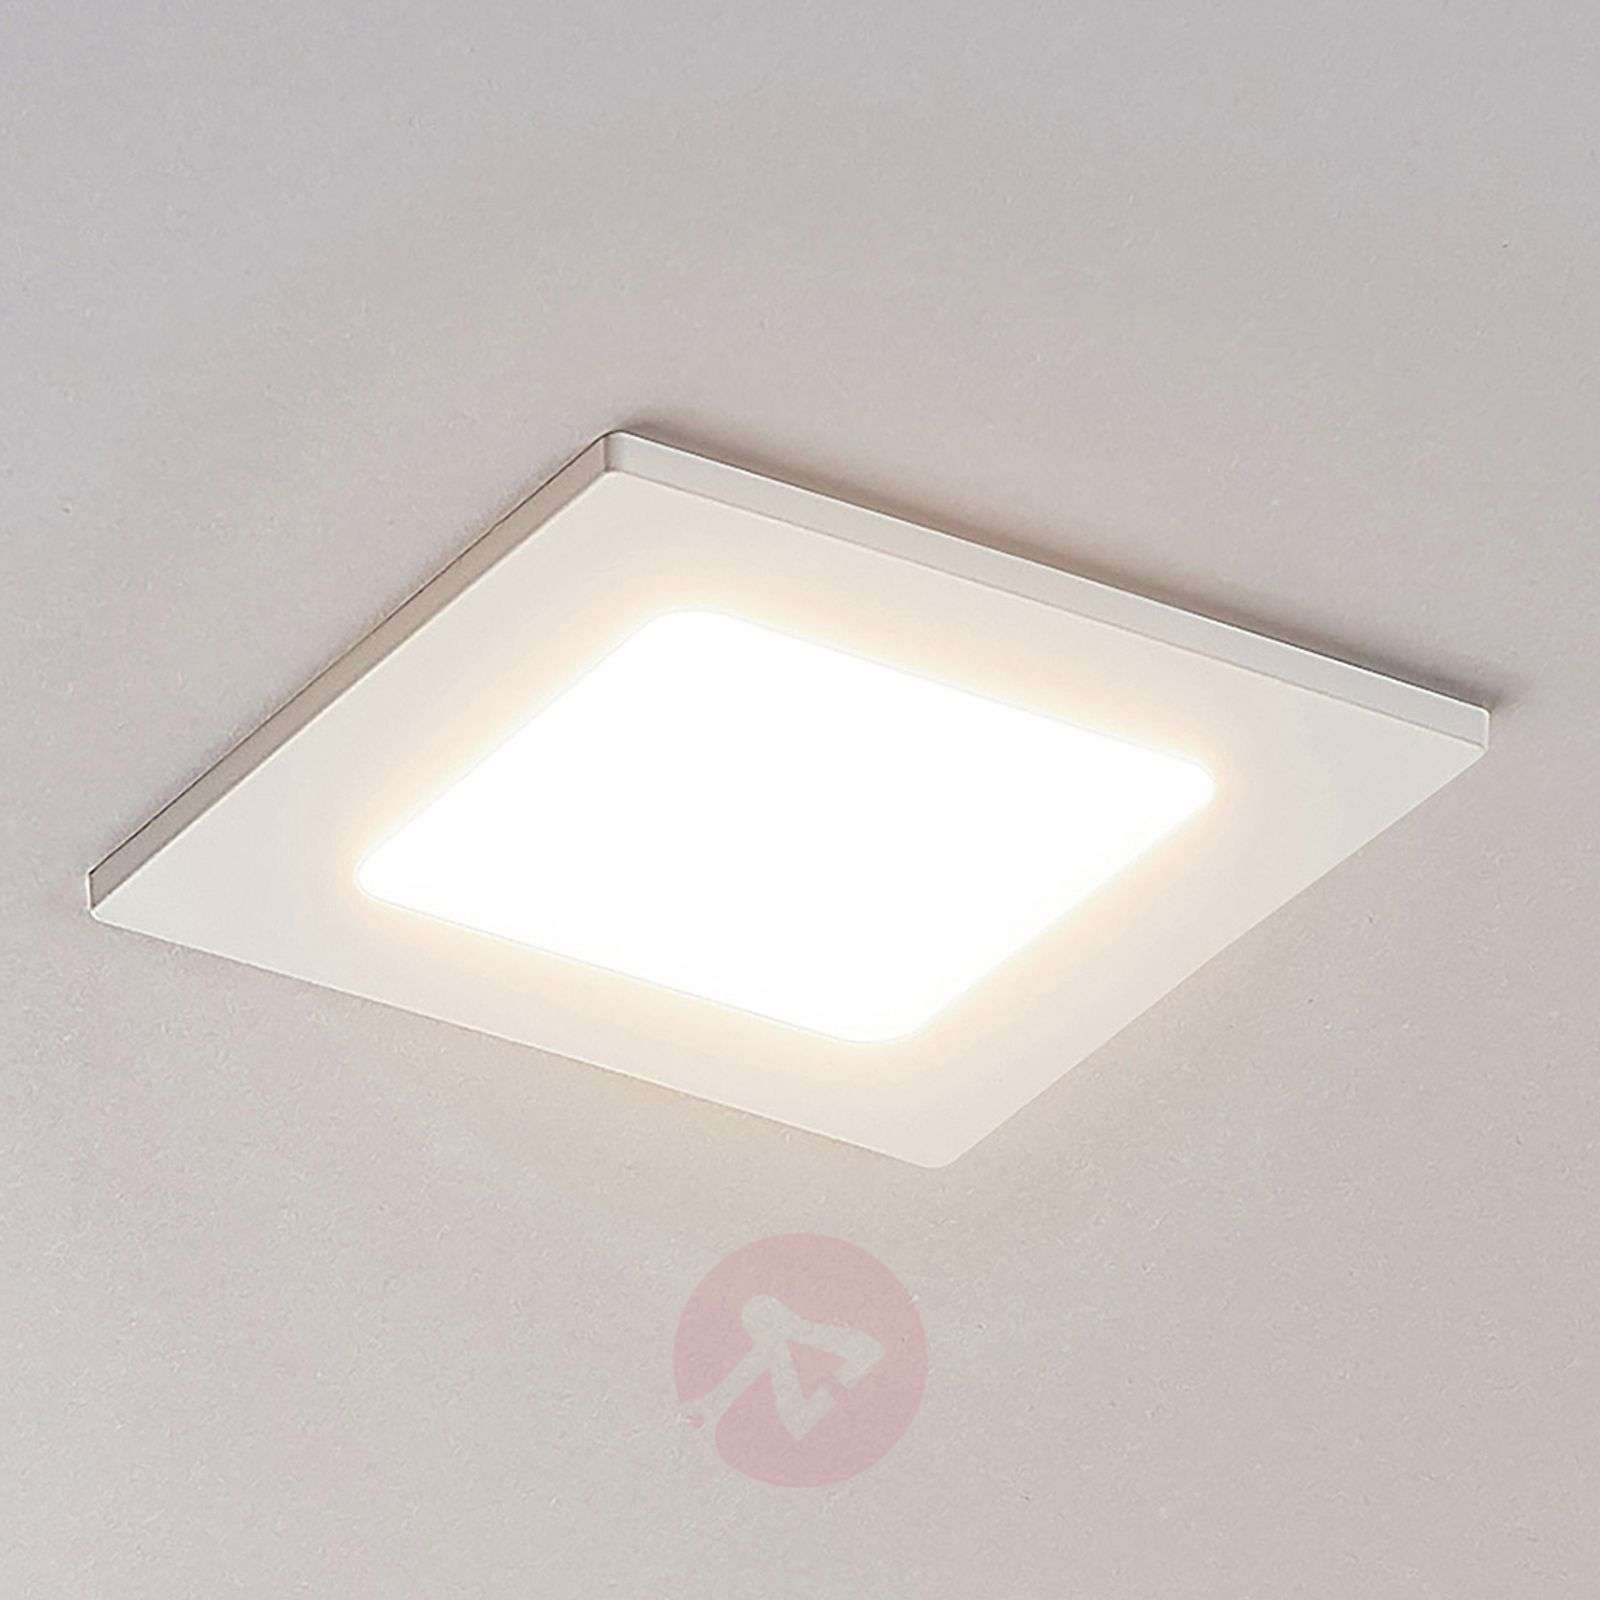 Foco LED Joki blanco 3.000 K angular 11,5 cm-9978087-02